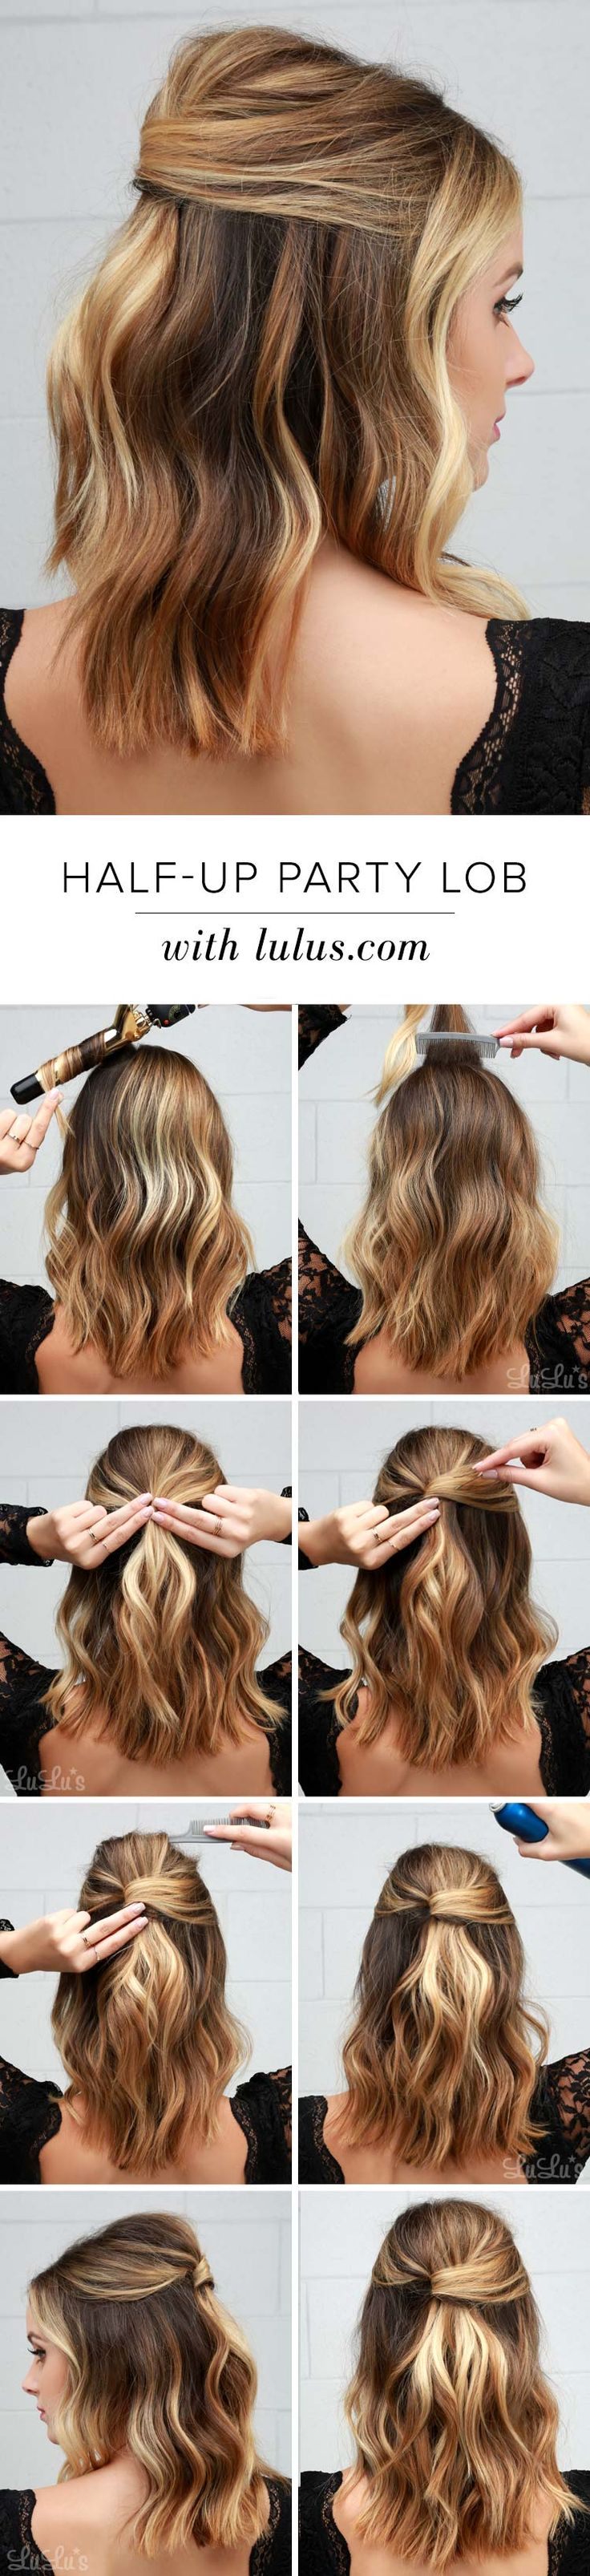 best hairstyle images on pinterest coiffure facile hairstyle